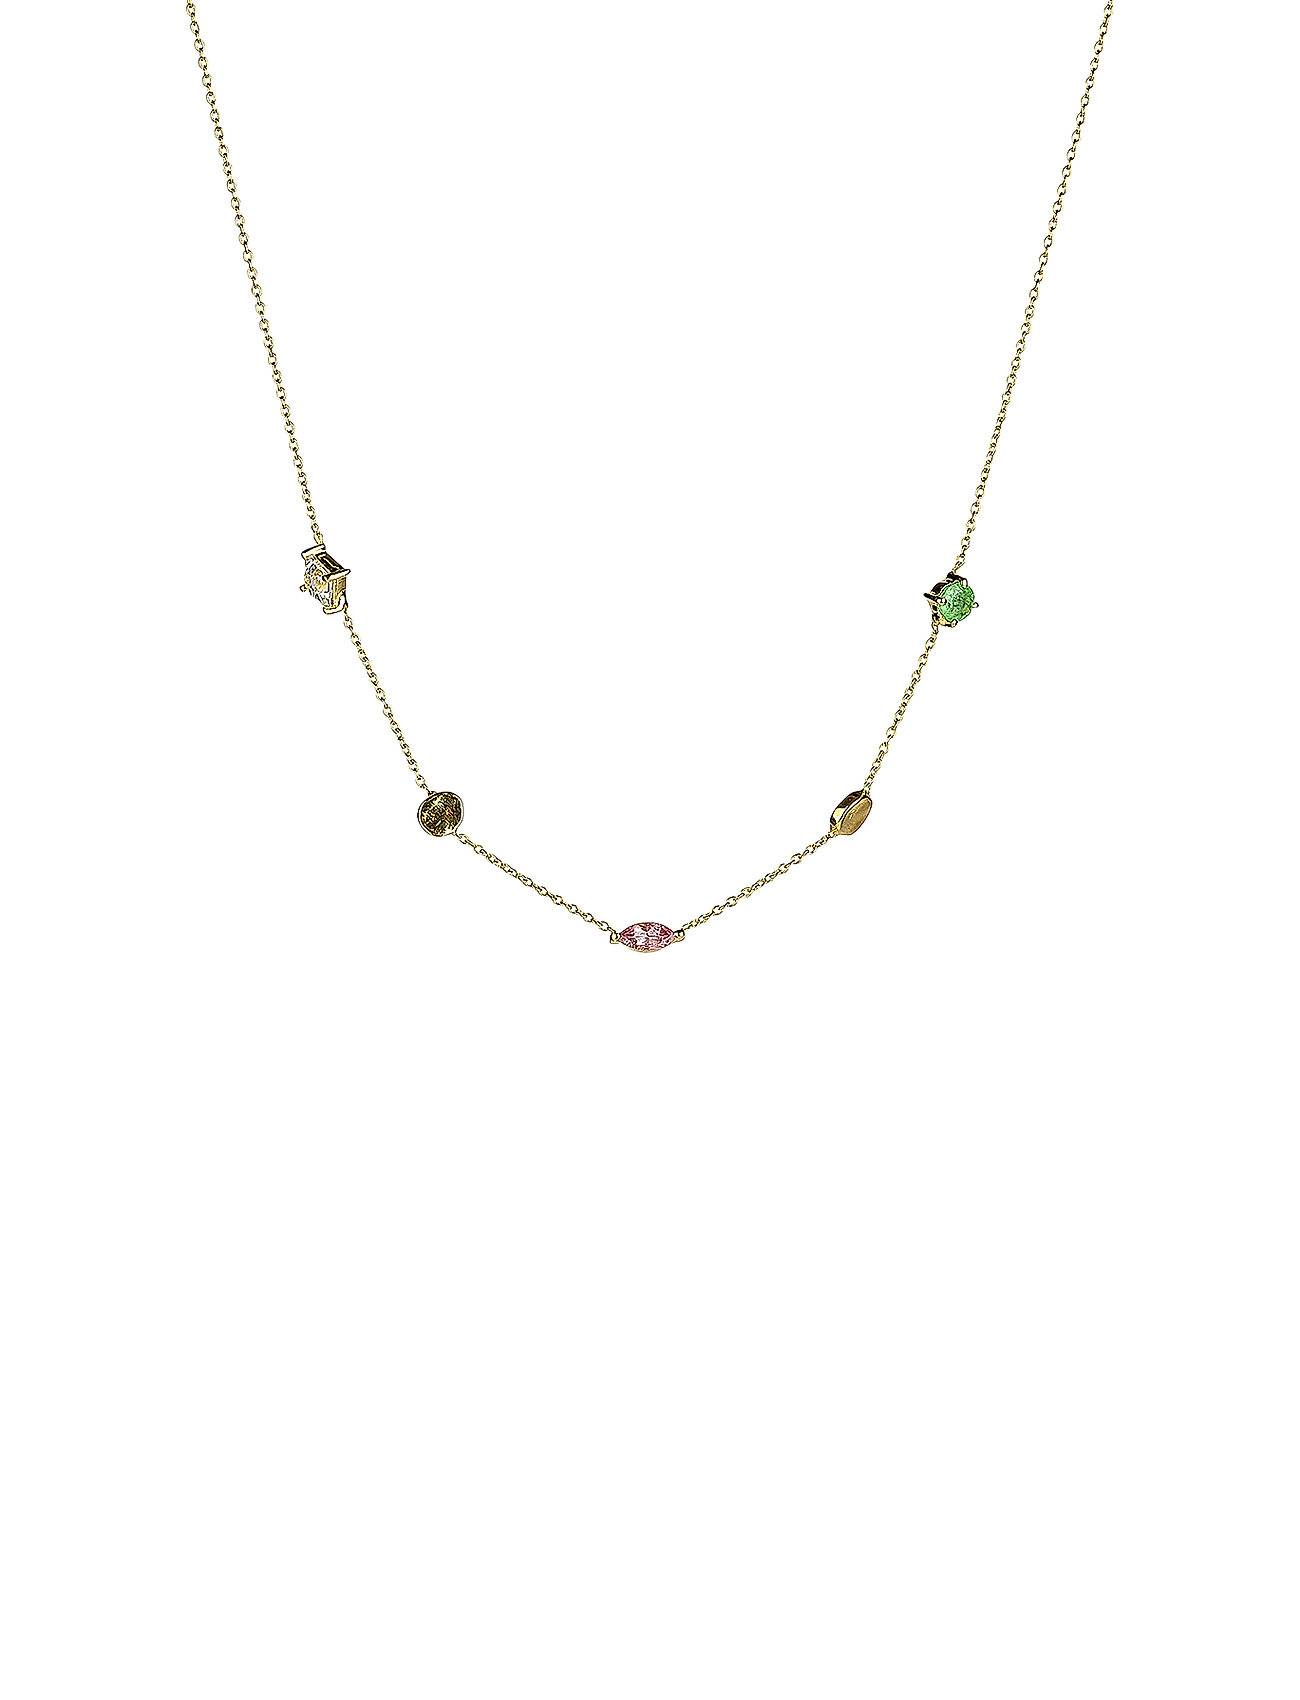 Syster P Divine Multi Necklace Gold Accessories Jewellery Necklaces Dainty Necklaces Kulta Syster P